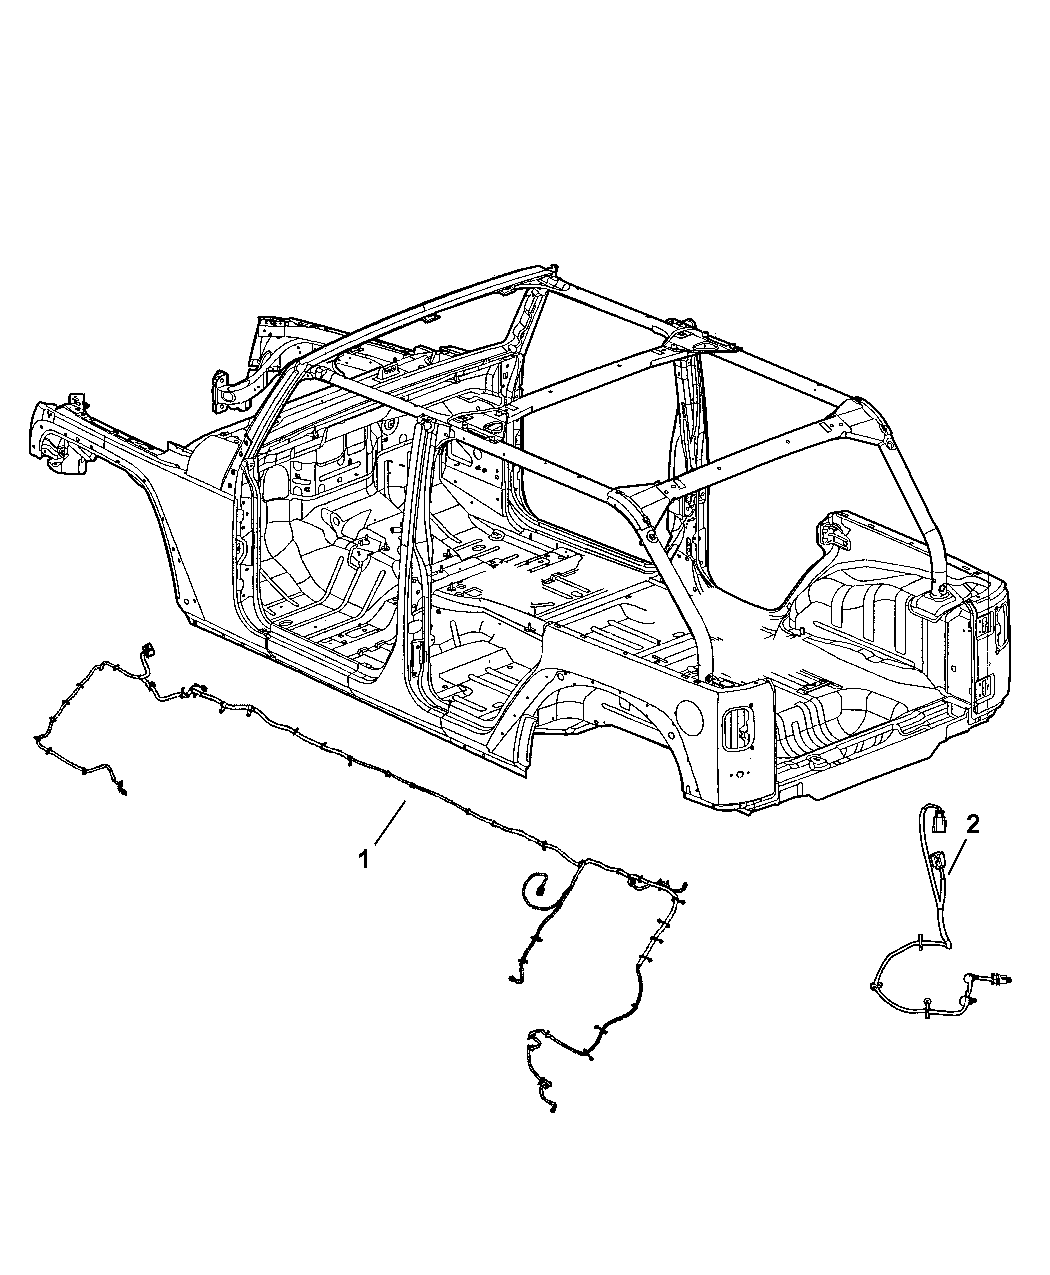 68059252aa genuine mopar wiring chassis 1989 jeep yj wrangler wiring diagram